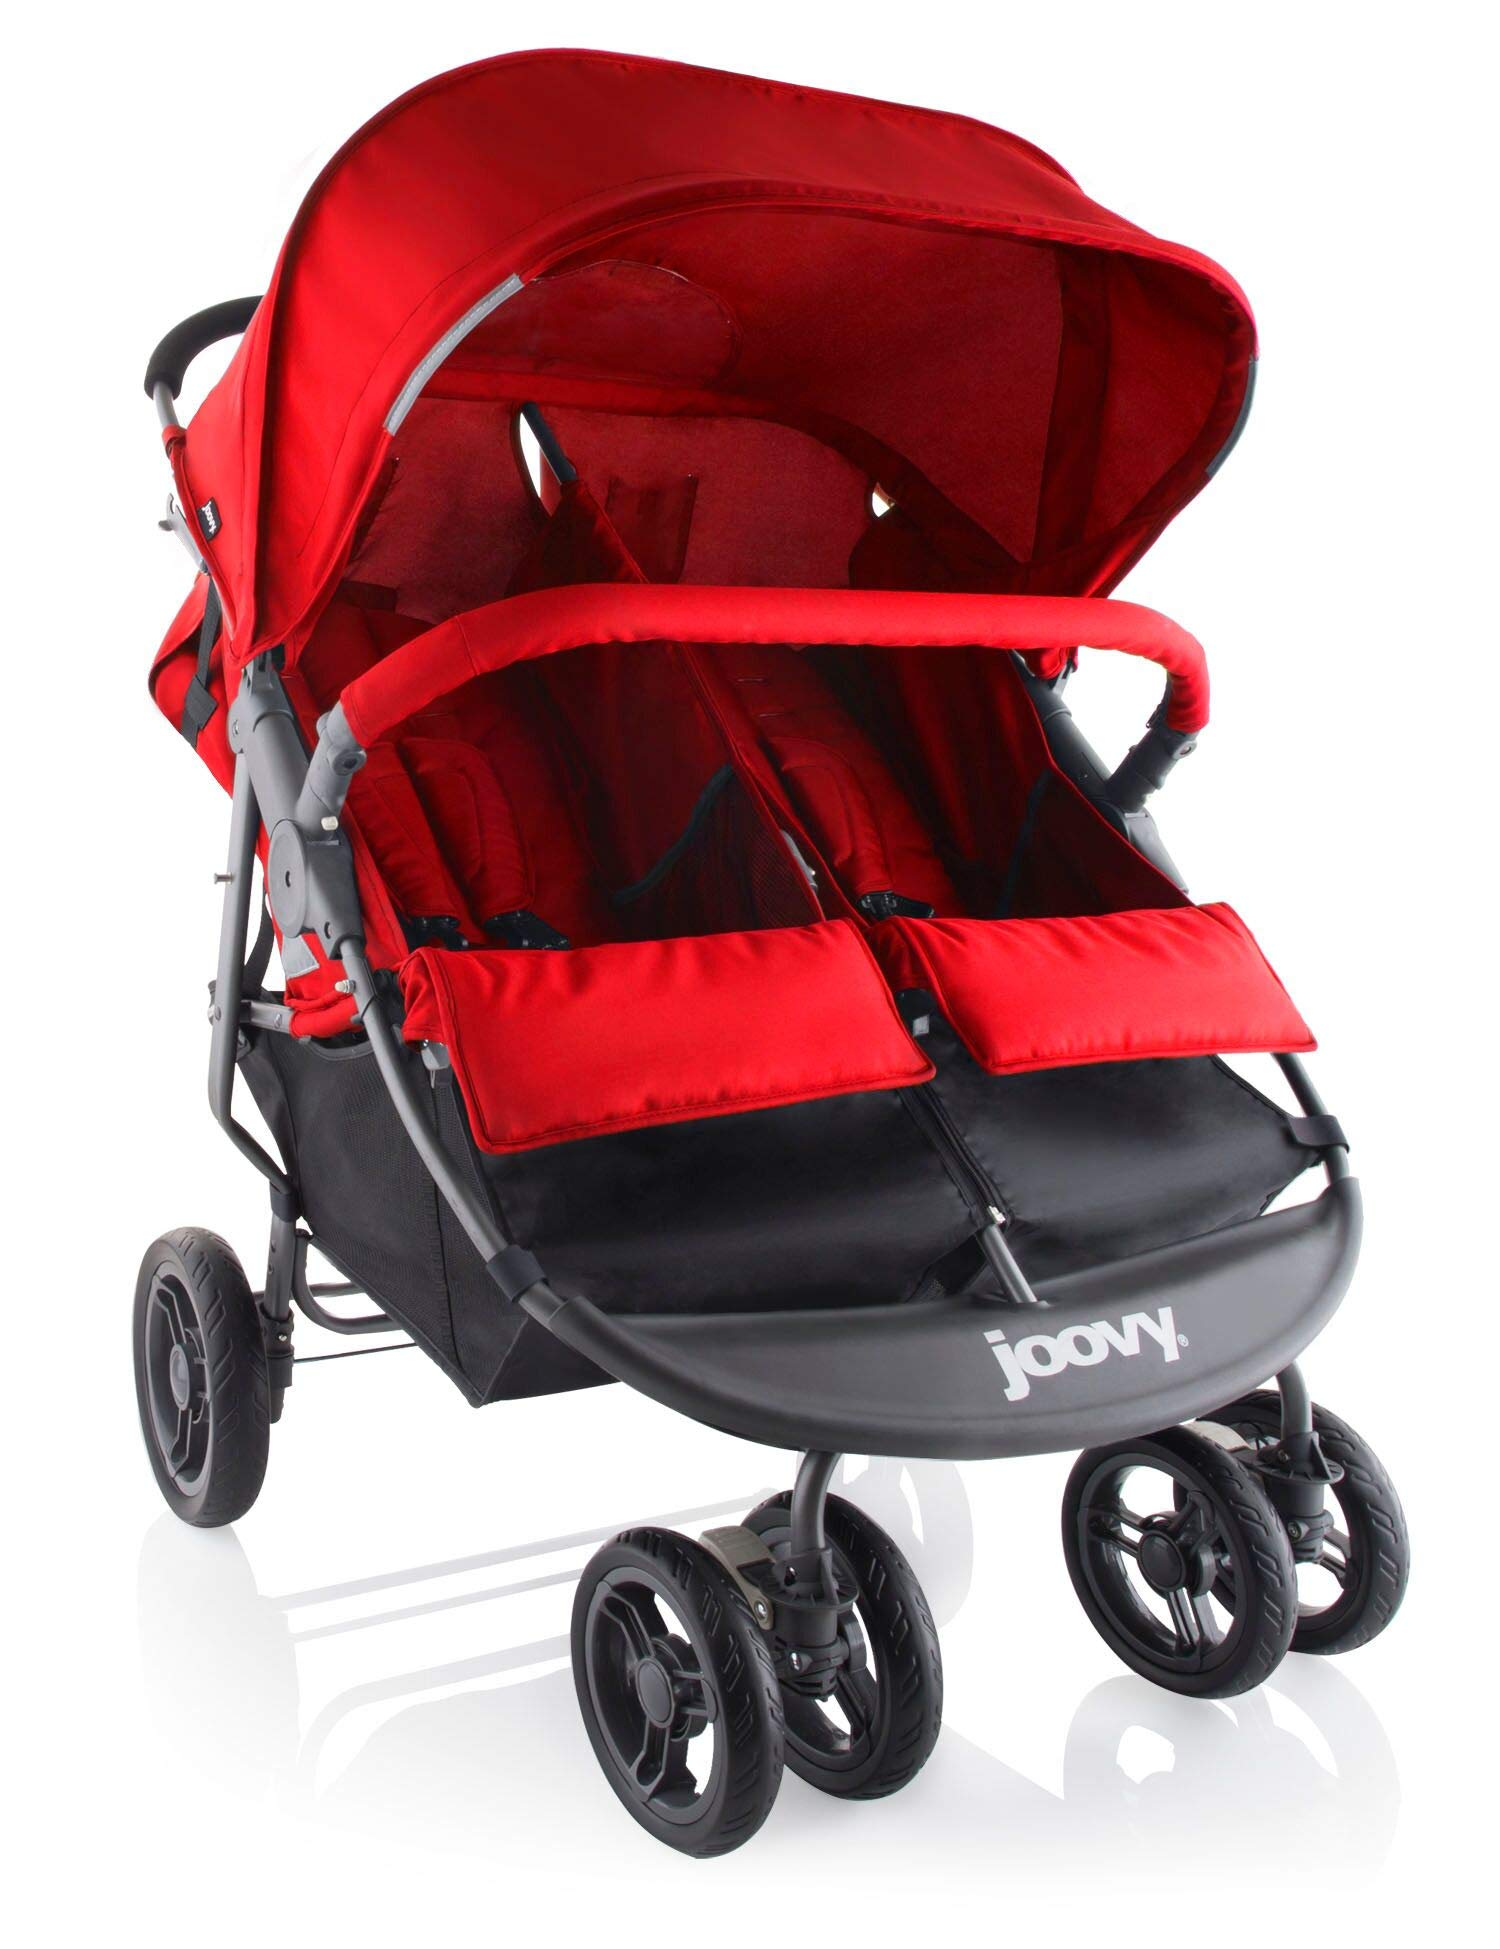 Joovy Scooter Double Stroller Red